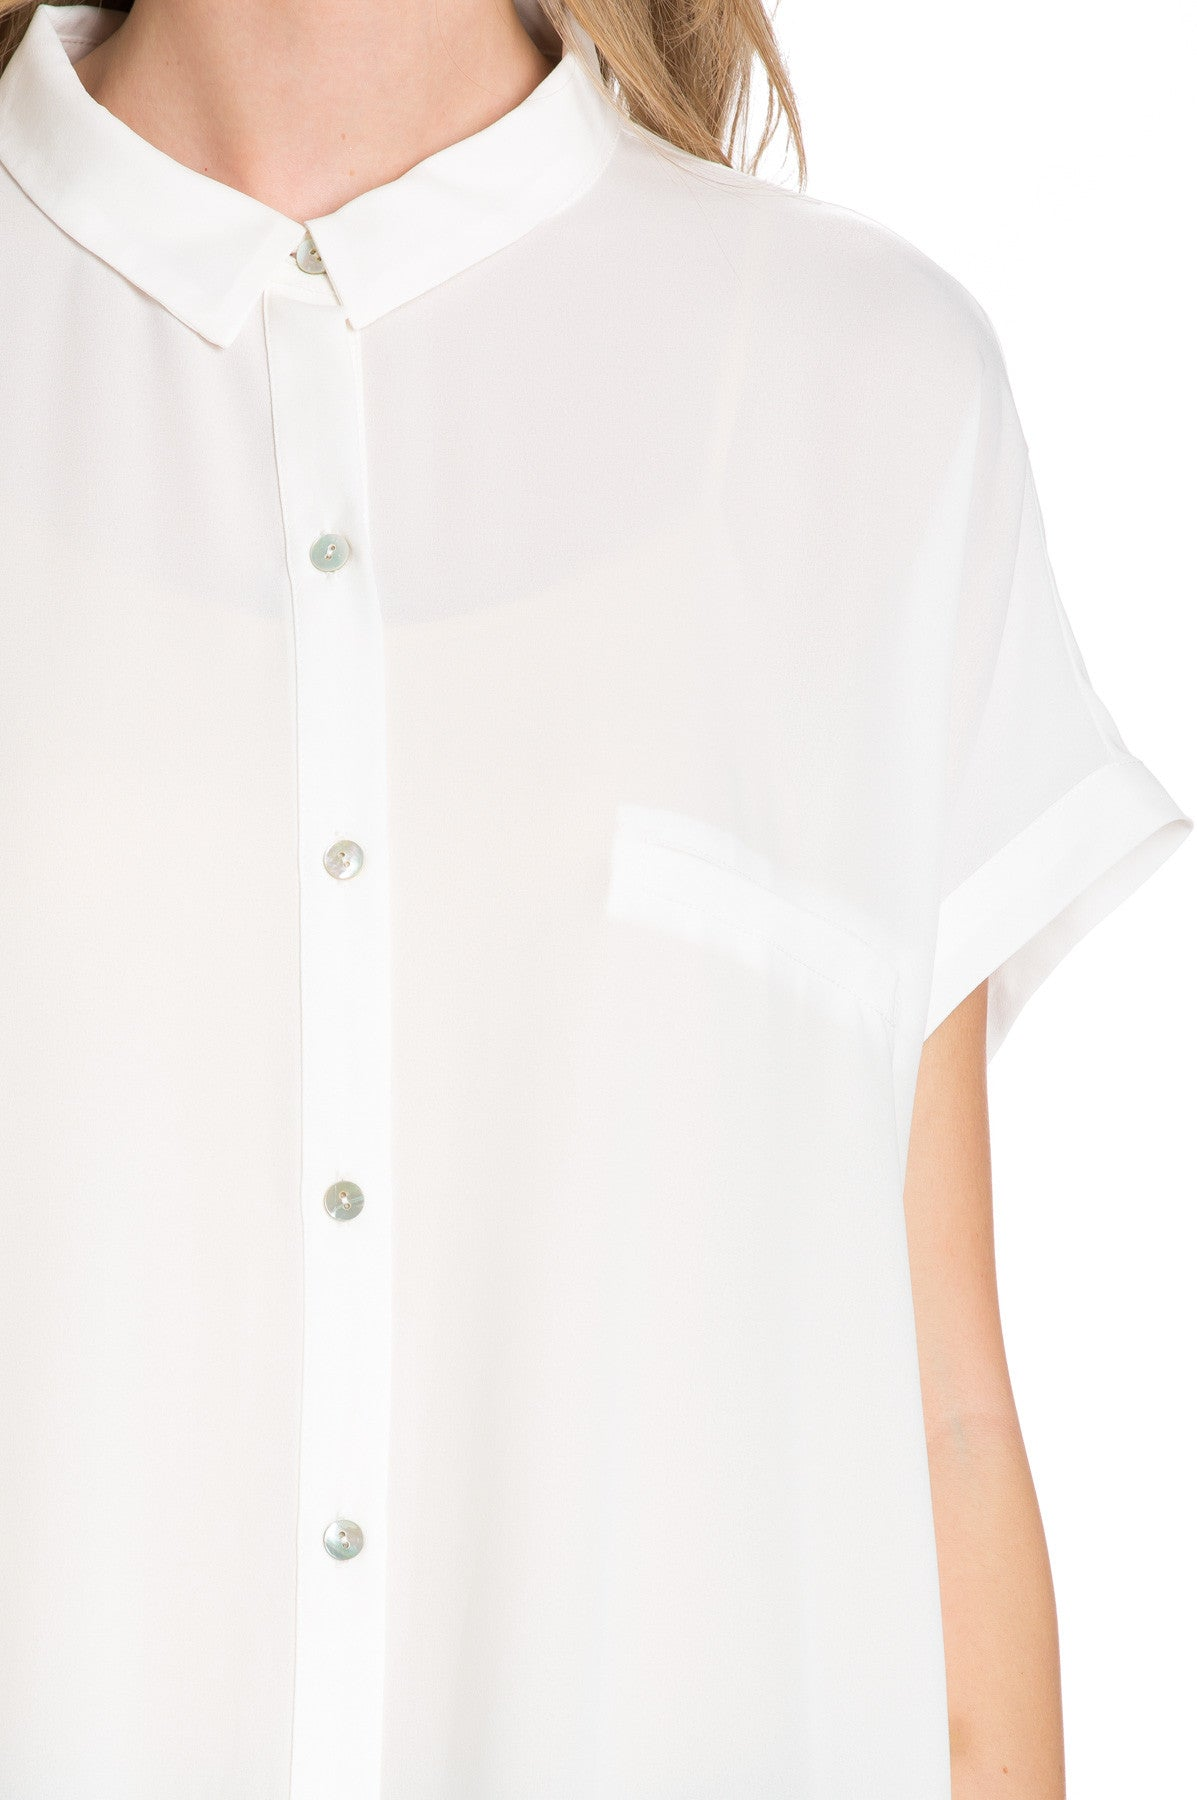 Short Sleeve Longline Button Down Chiffon Top in White - Tops - My Yuccie - 13